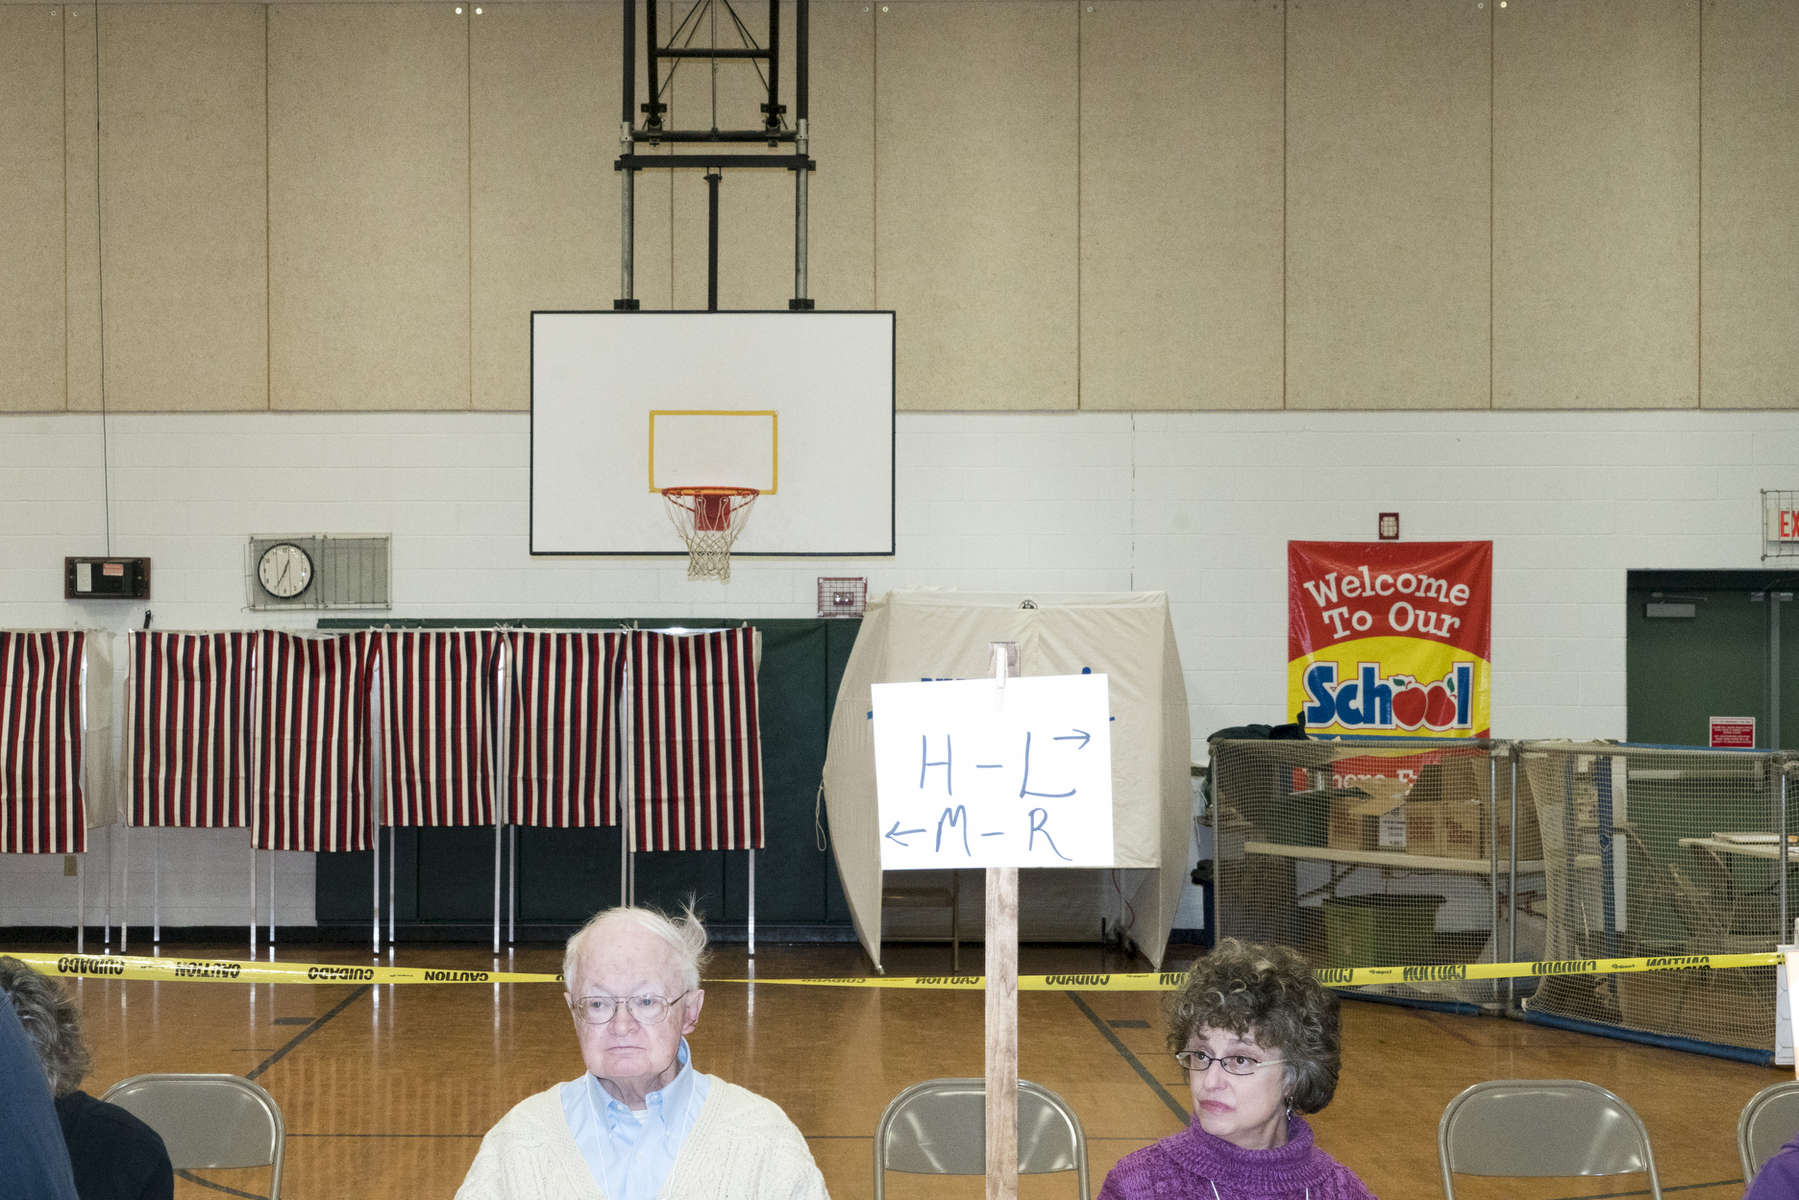 2016.  Nashua, NH.  USA. A polling station in Nashua on Primary Day.  Donald Trump ultimately won the Republican primary and Bernie Sanders won the Democratic.